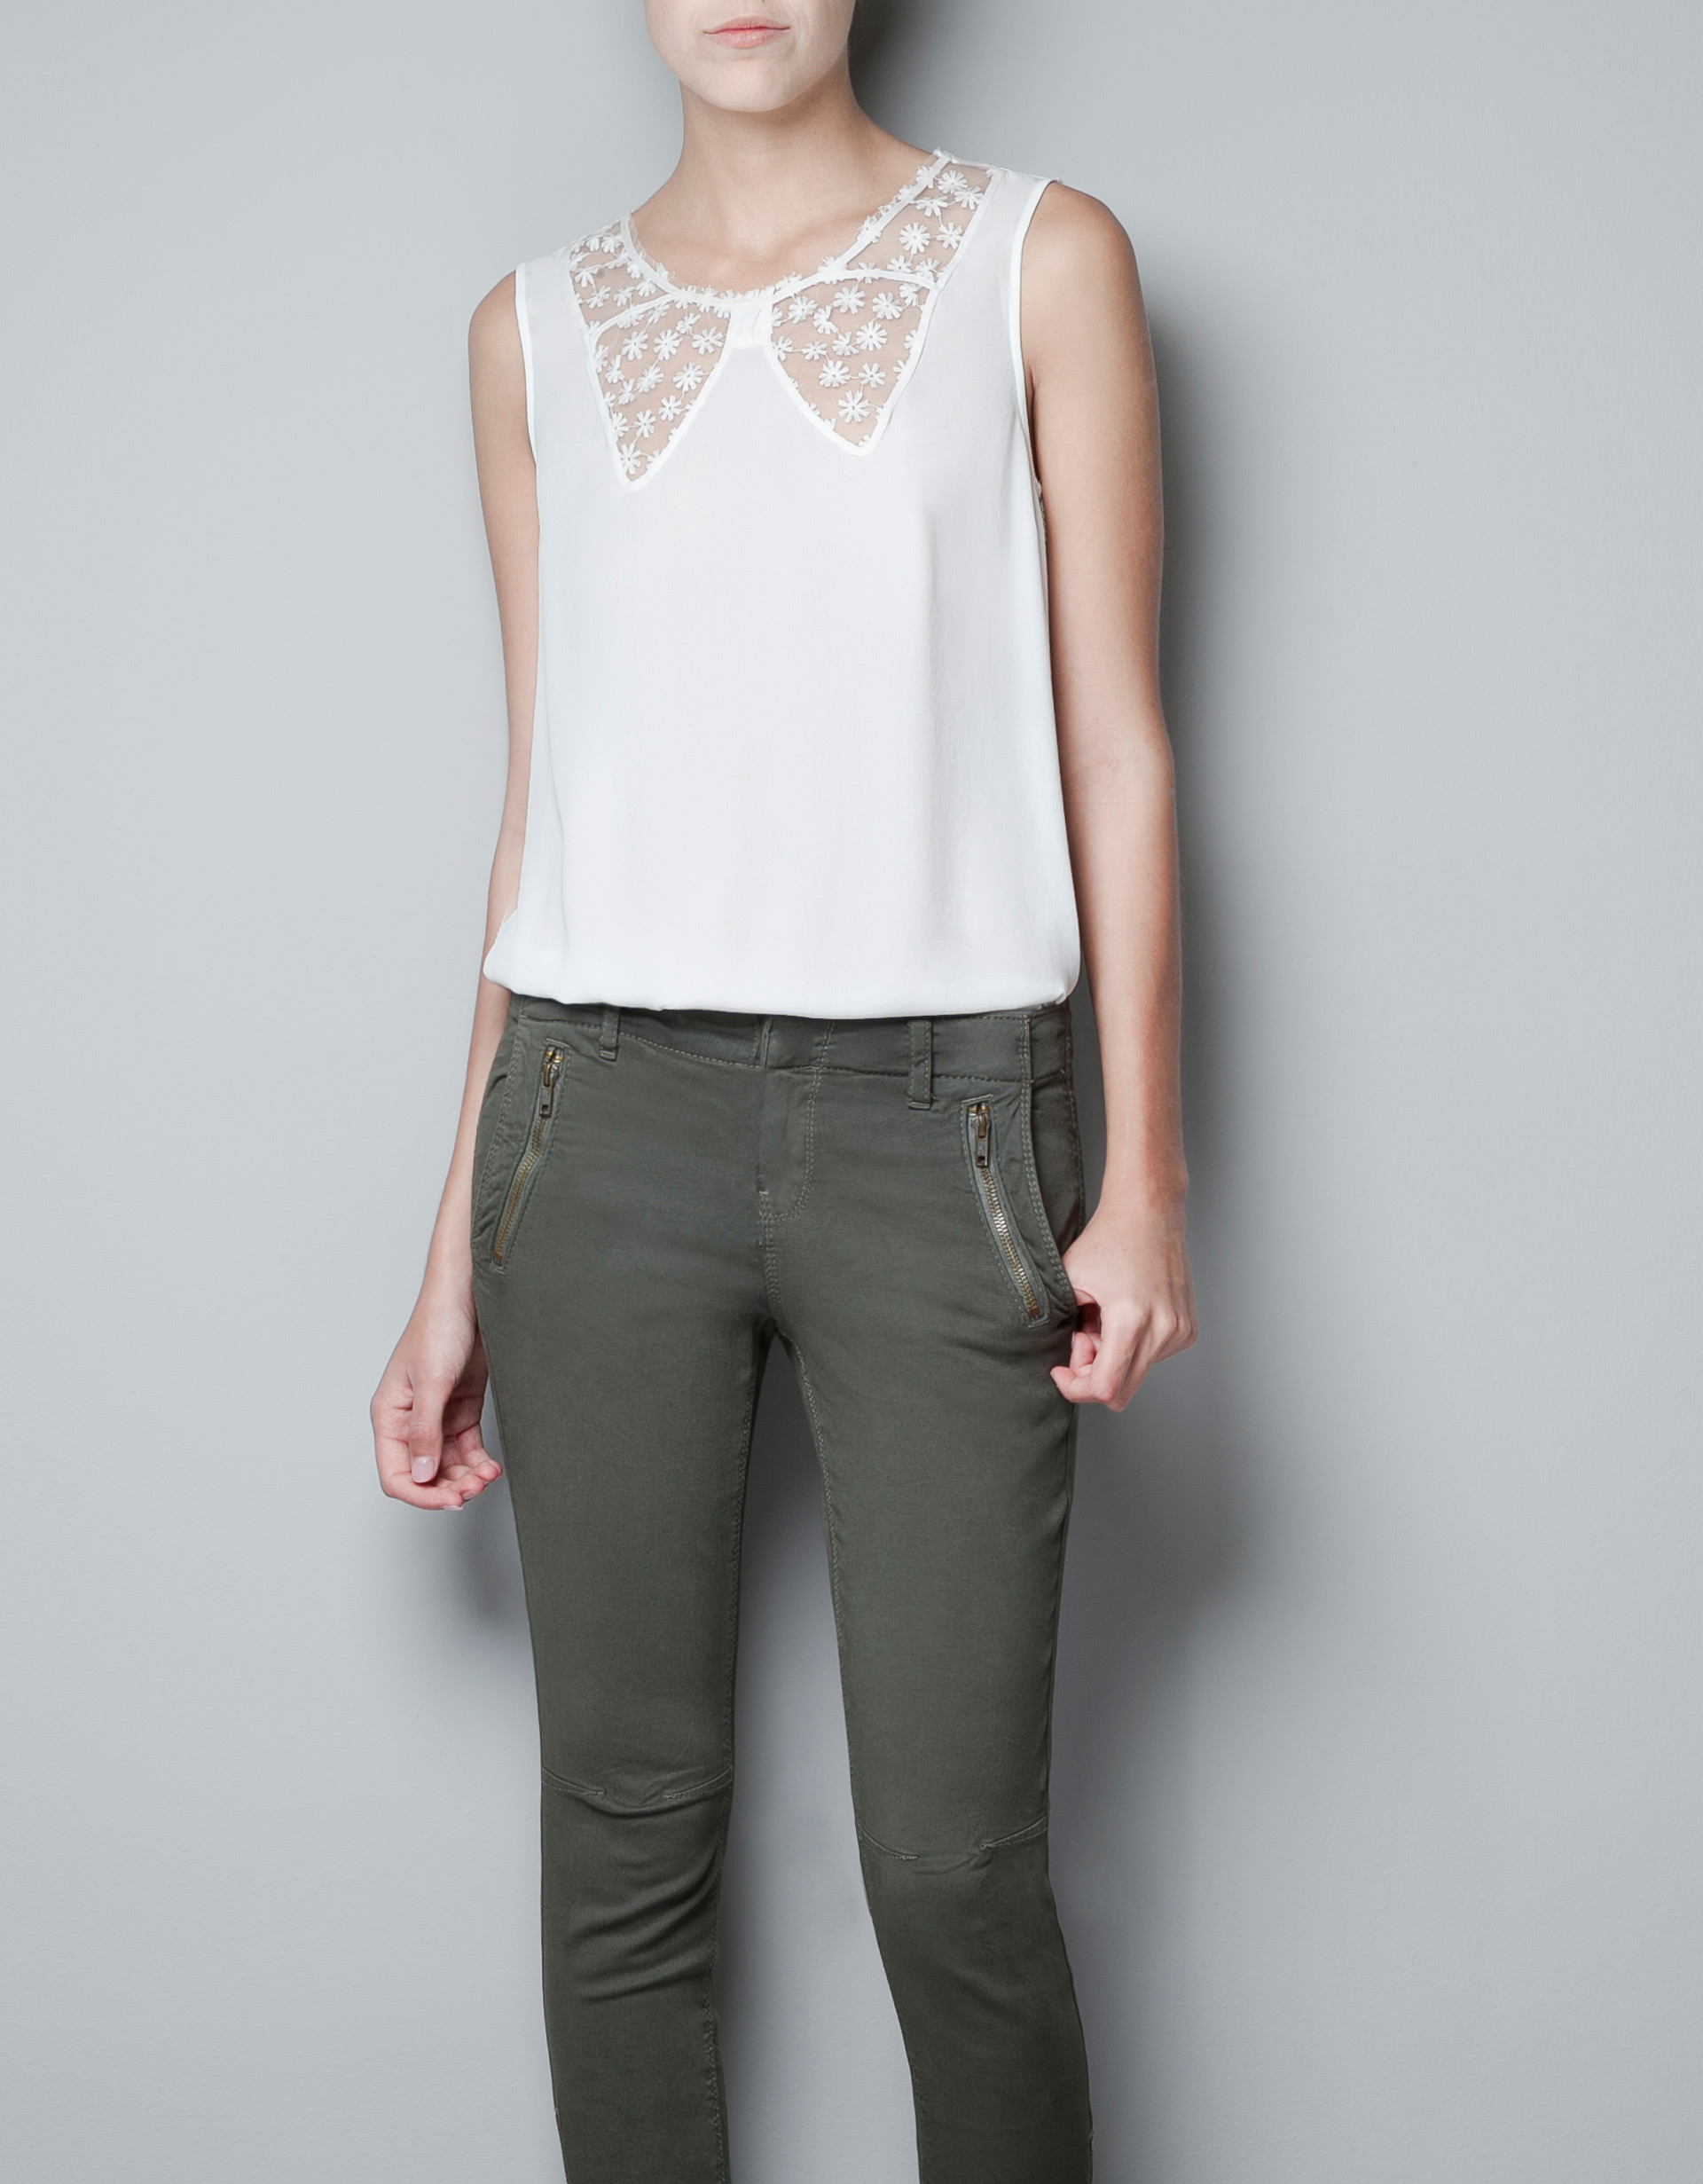 Zara Lace Blouse 11